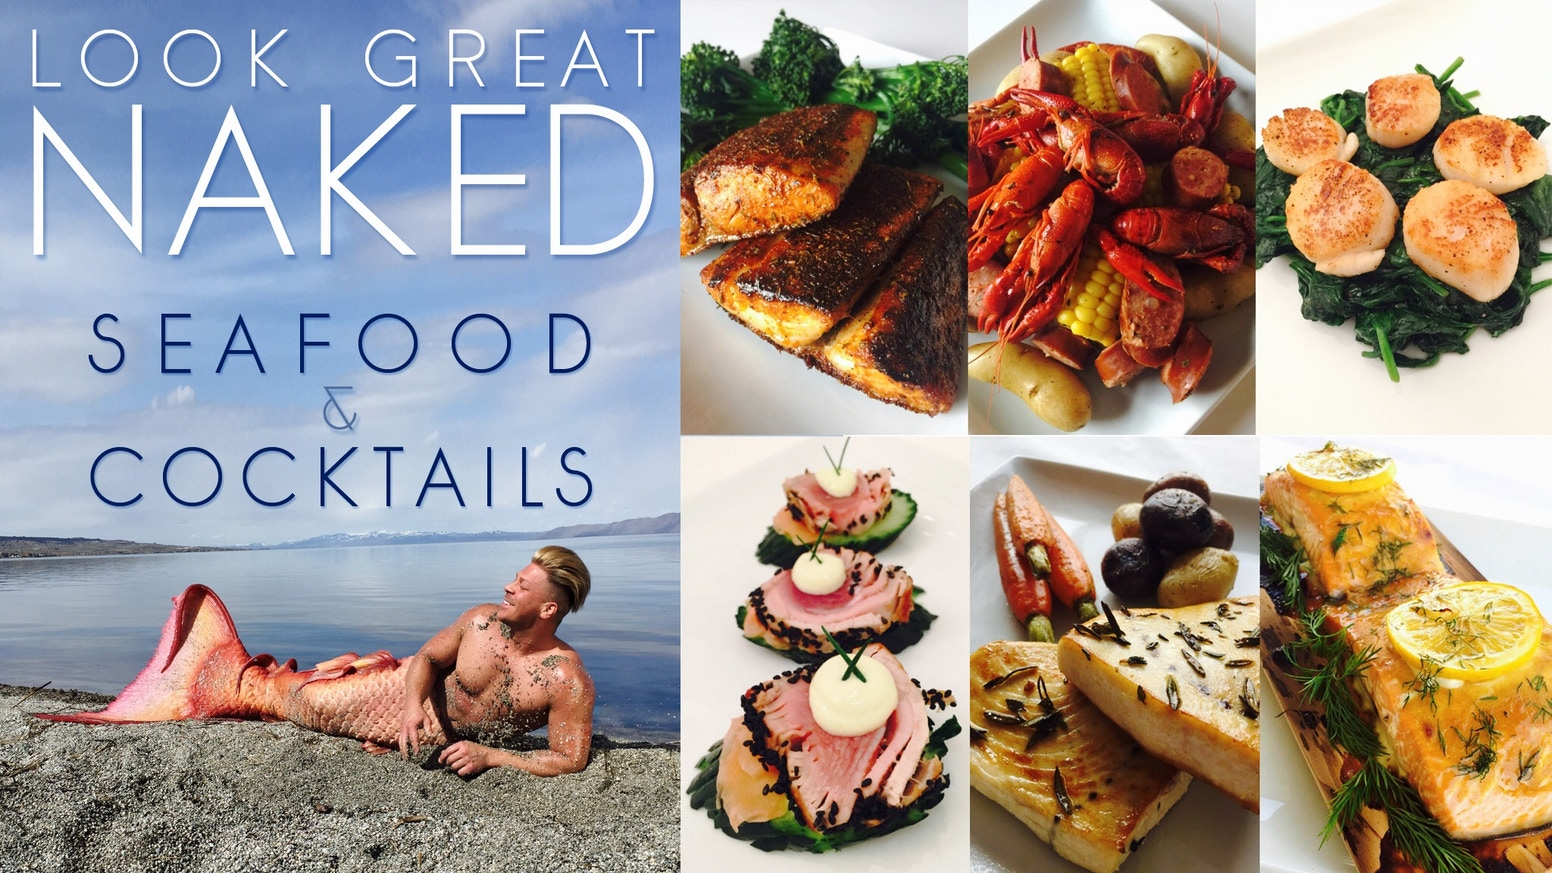 Look Great NAKED: Seafood & Cocktails!  Healthy, cheeky, and delicious!  The much anticipated follow up to Look Great Naked Cookbook.  Get yours at www.LookGreatNakedbrand.com